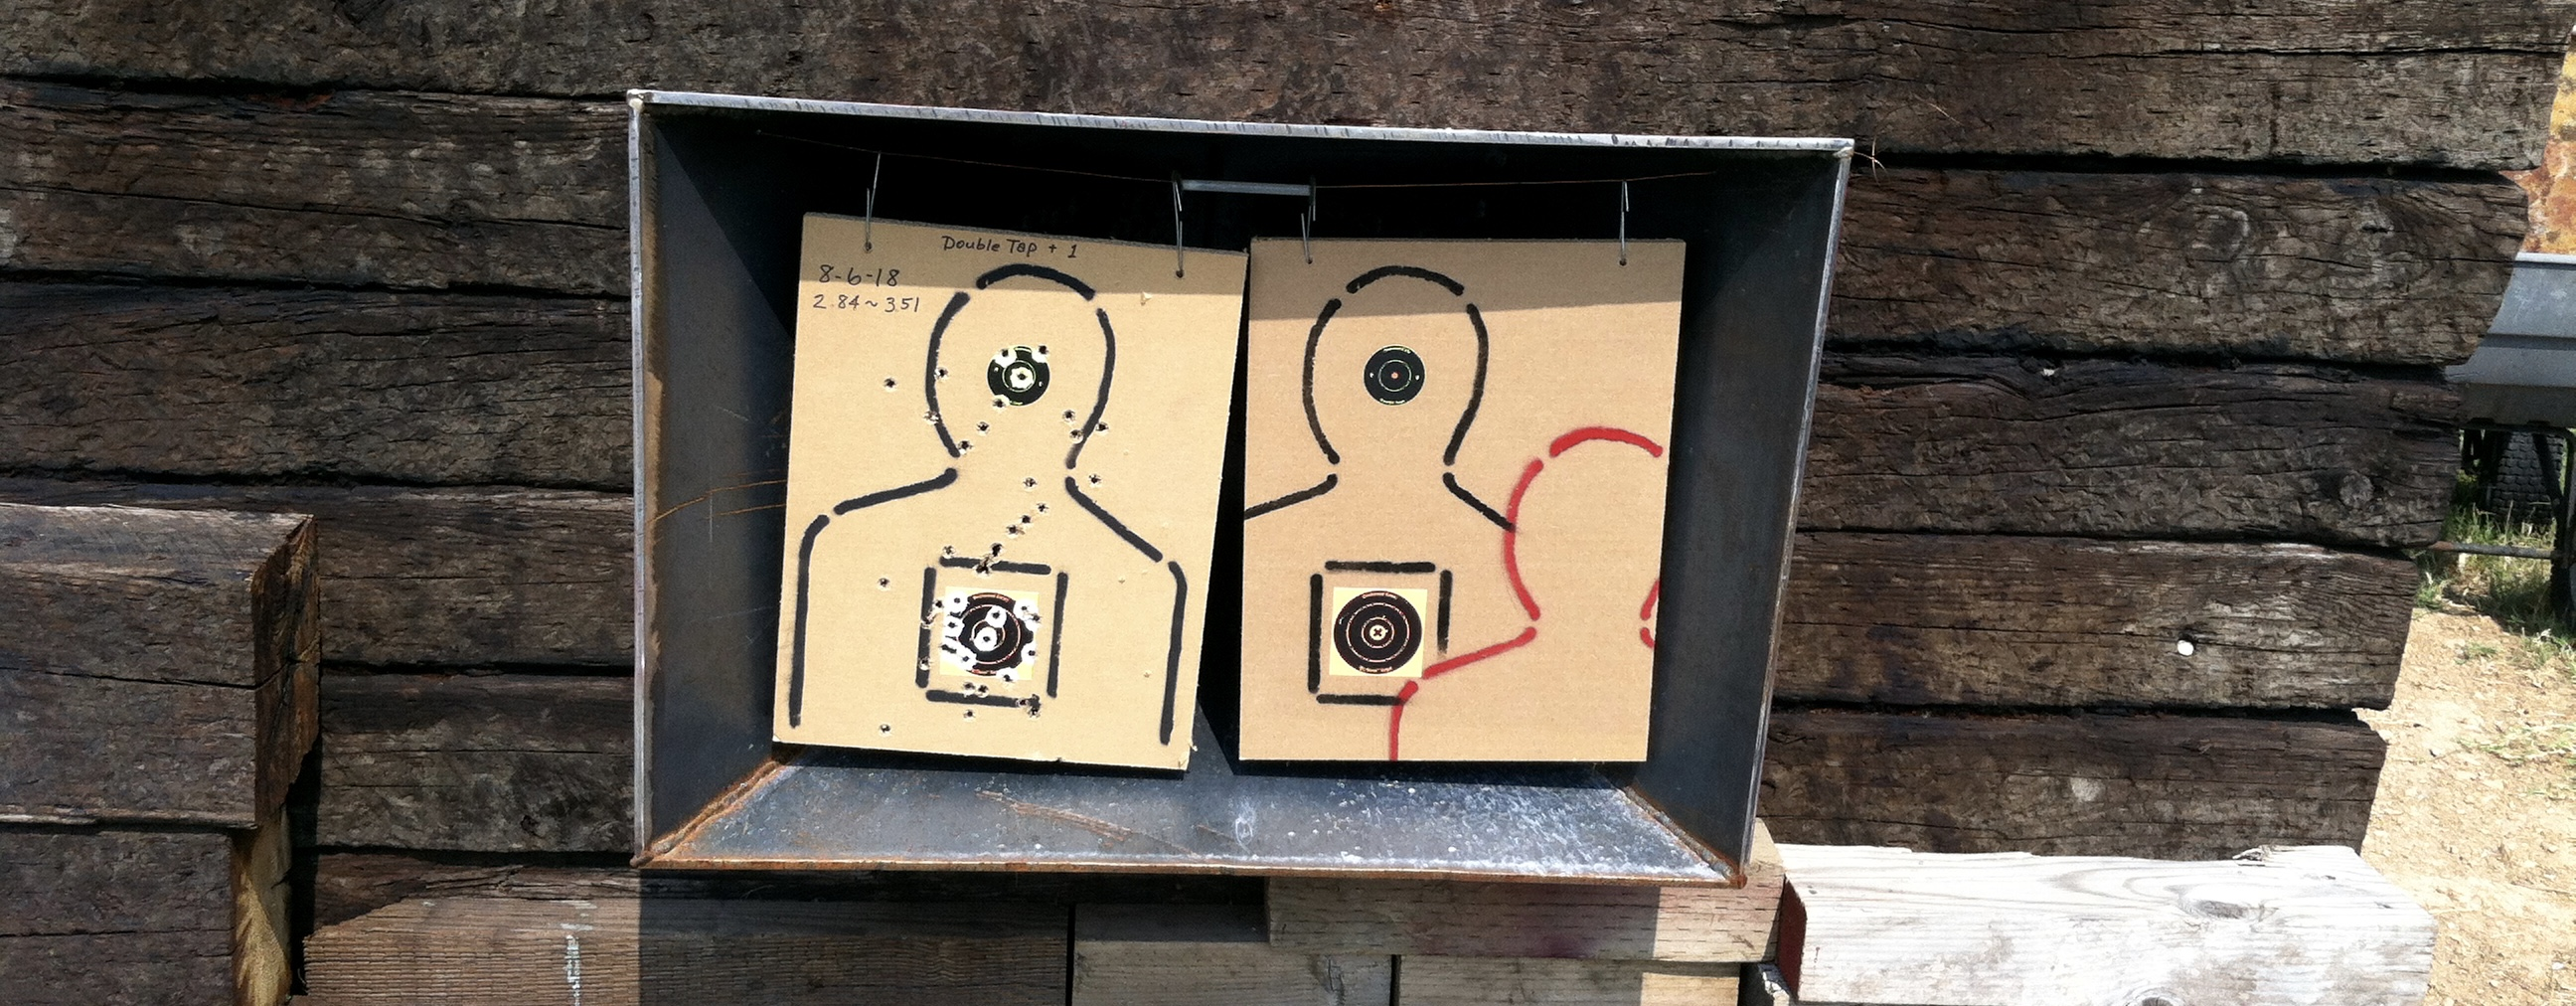 MAKING TARGETS . . . Recycle that cardboard! 26